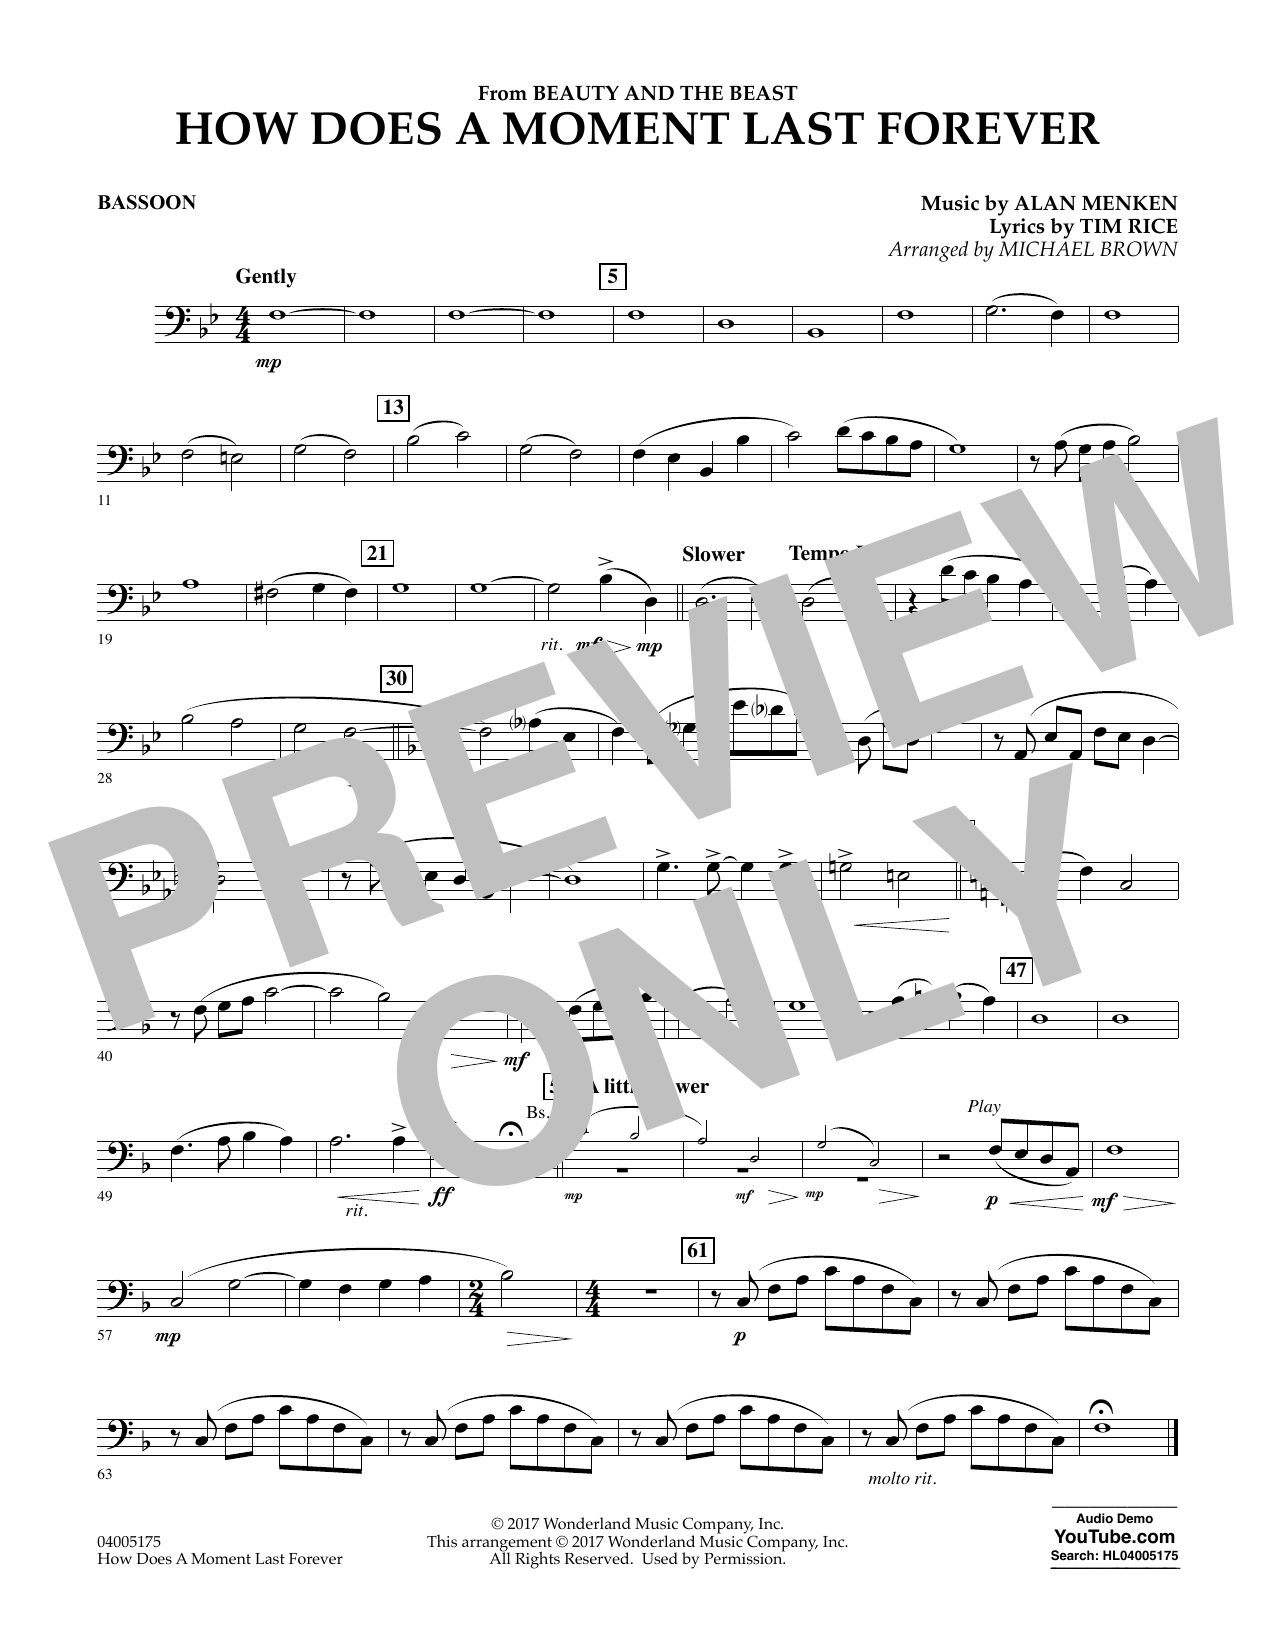 Michael Brown How Does a Moment Last Forever (from Beauty and the Beast) - Bassoon sheet music notes and chords. Download Printable PDF.